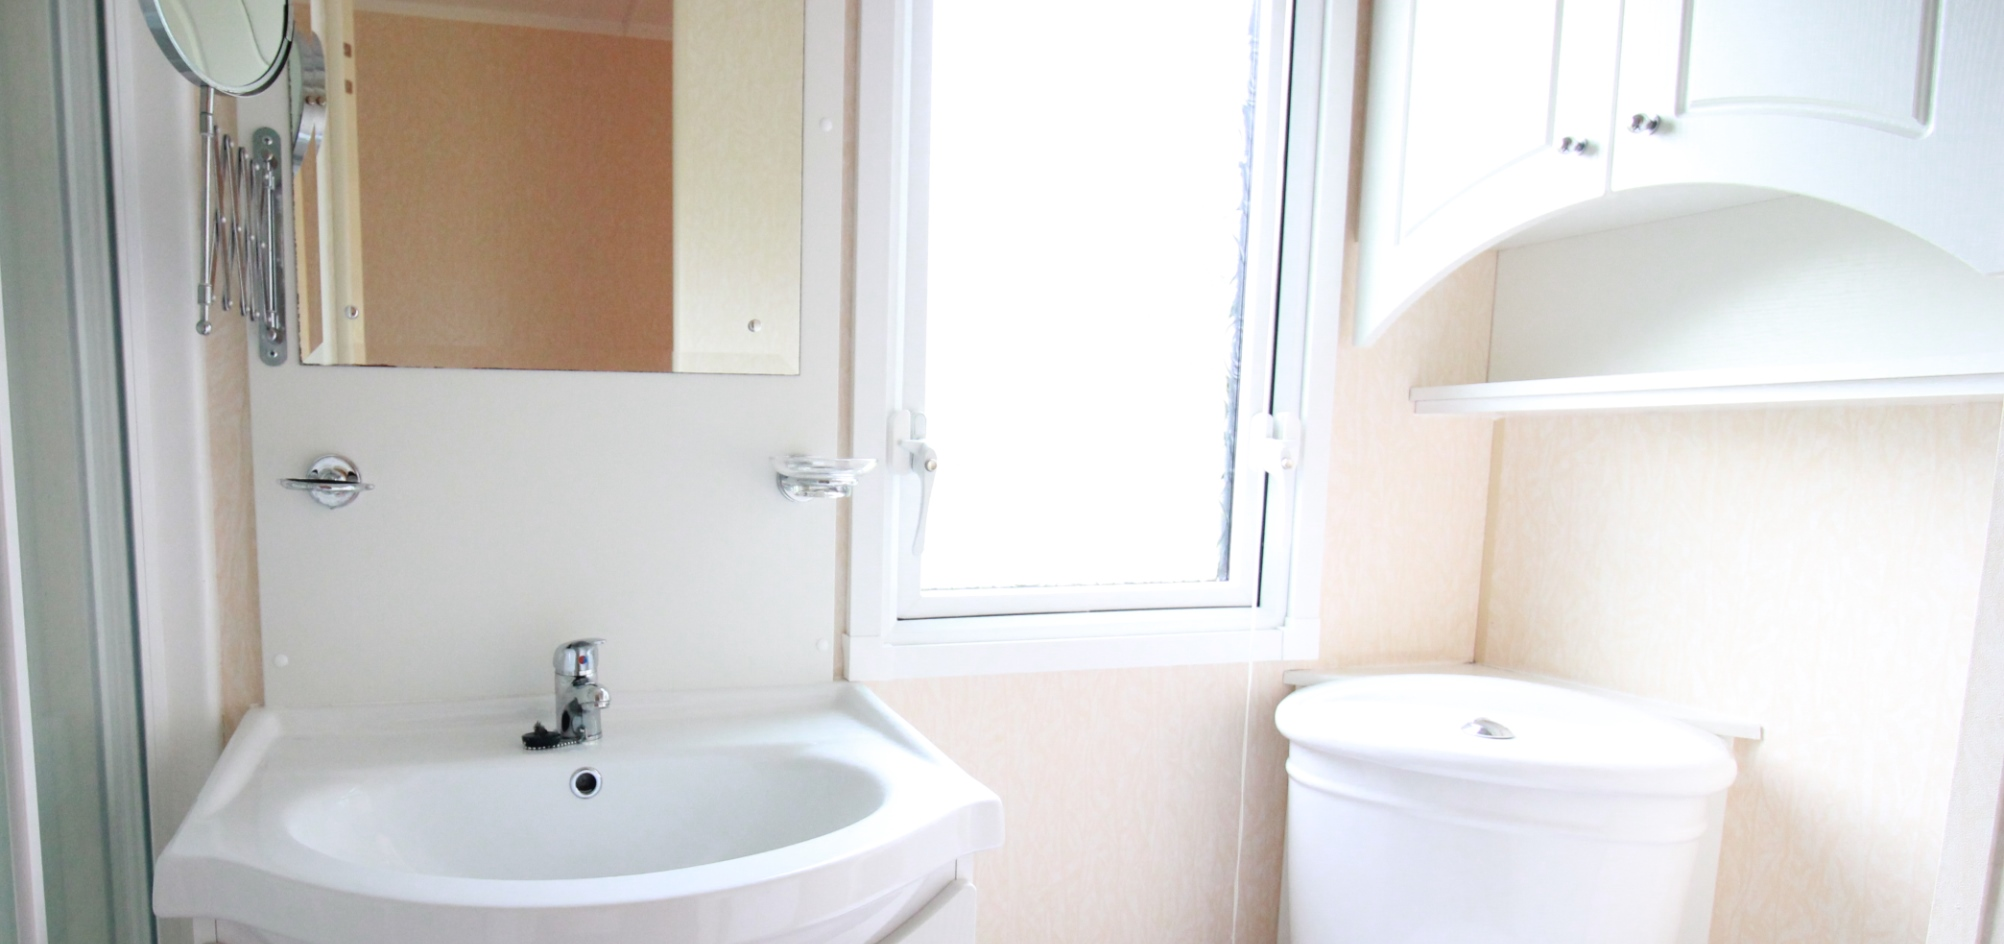 small bathroom with sink toliet and window